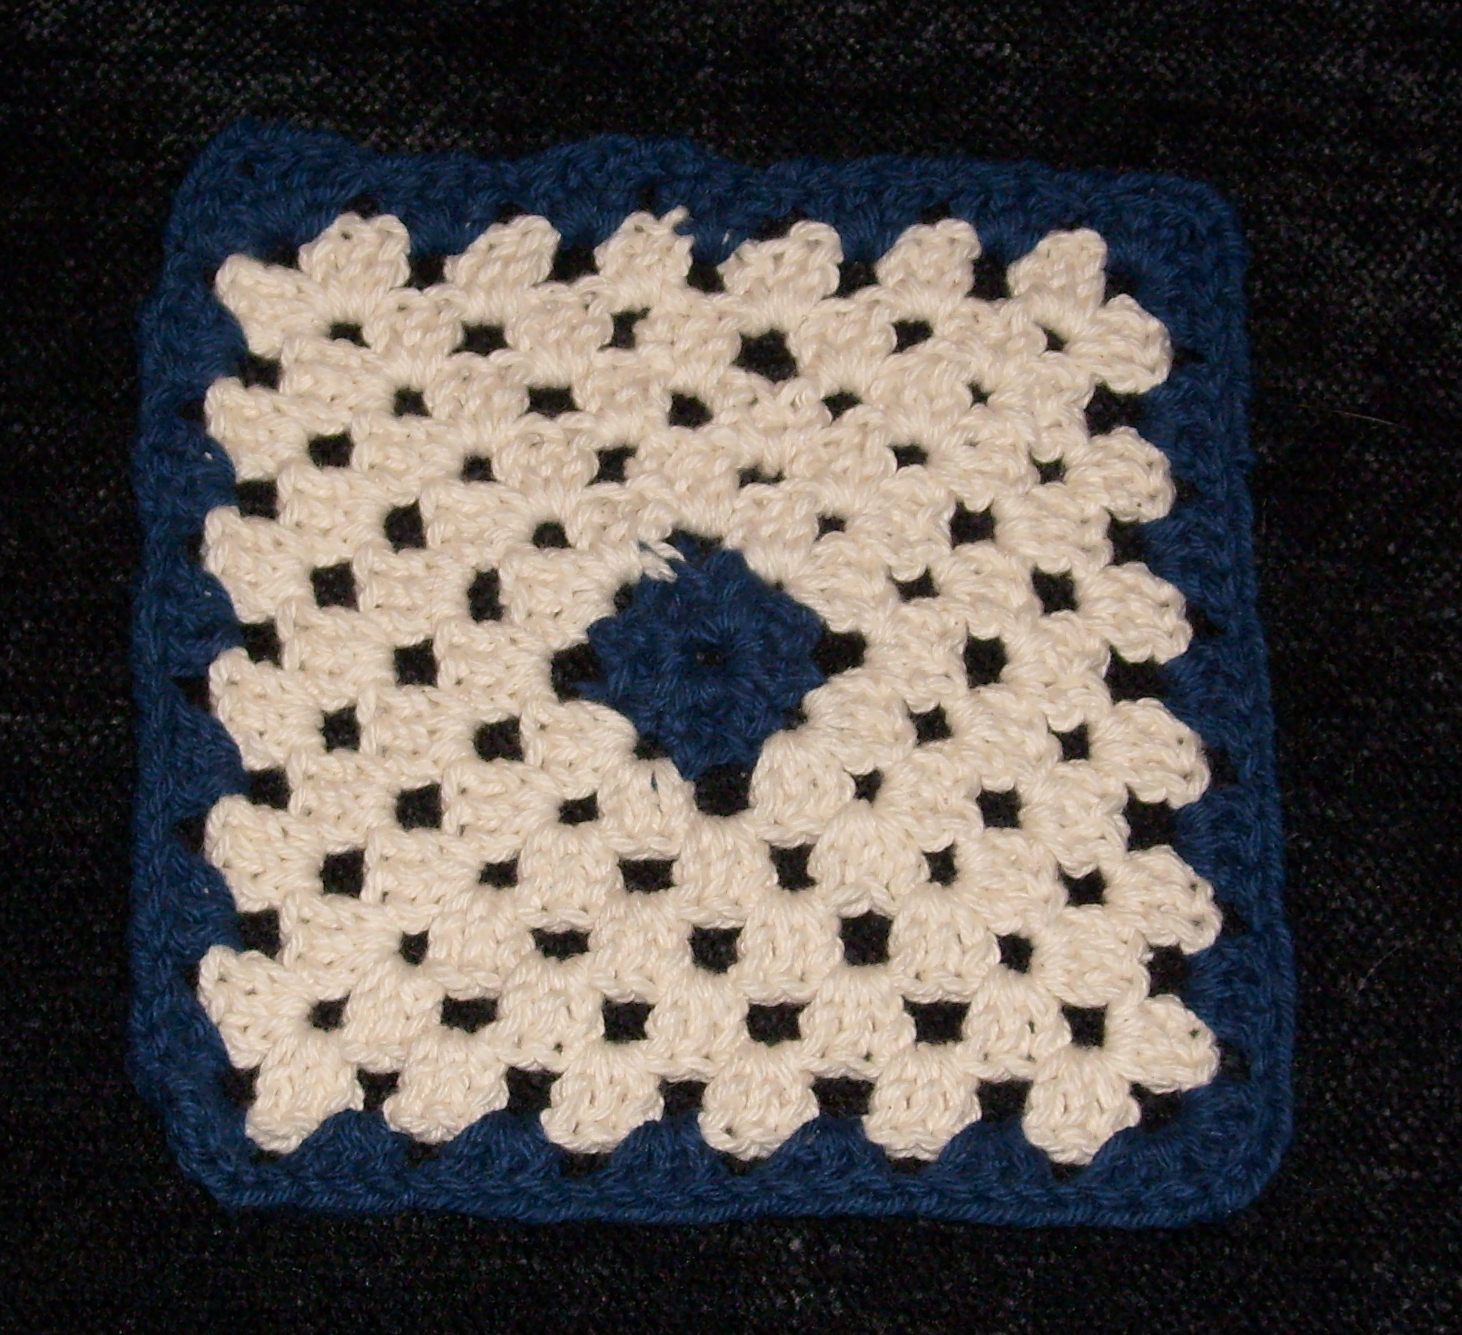 Crochet Stitches Wiki : File:Granny square.jpg - Wikipedia